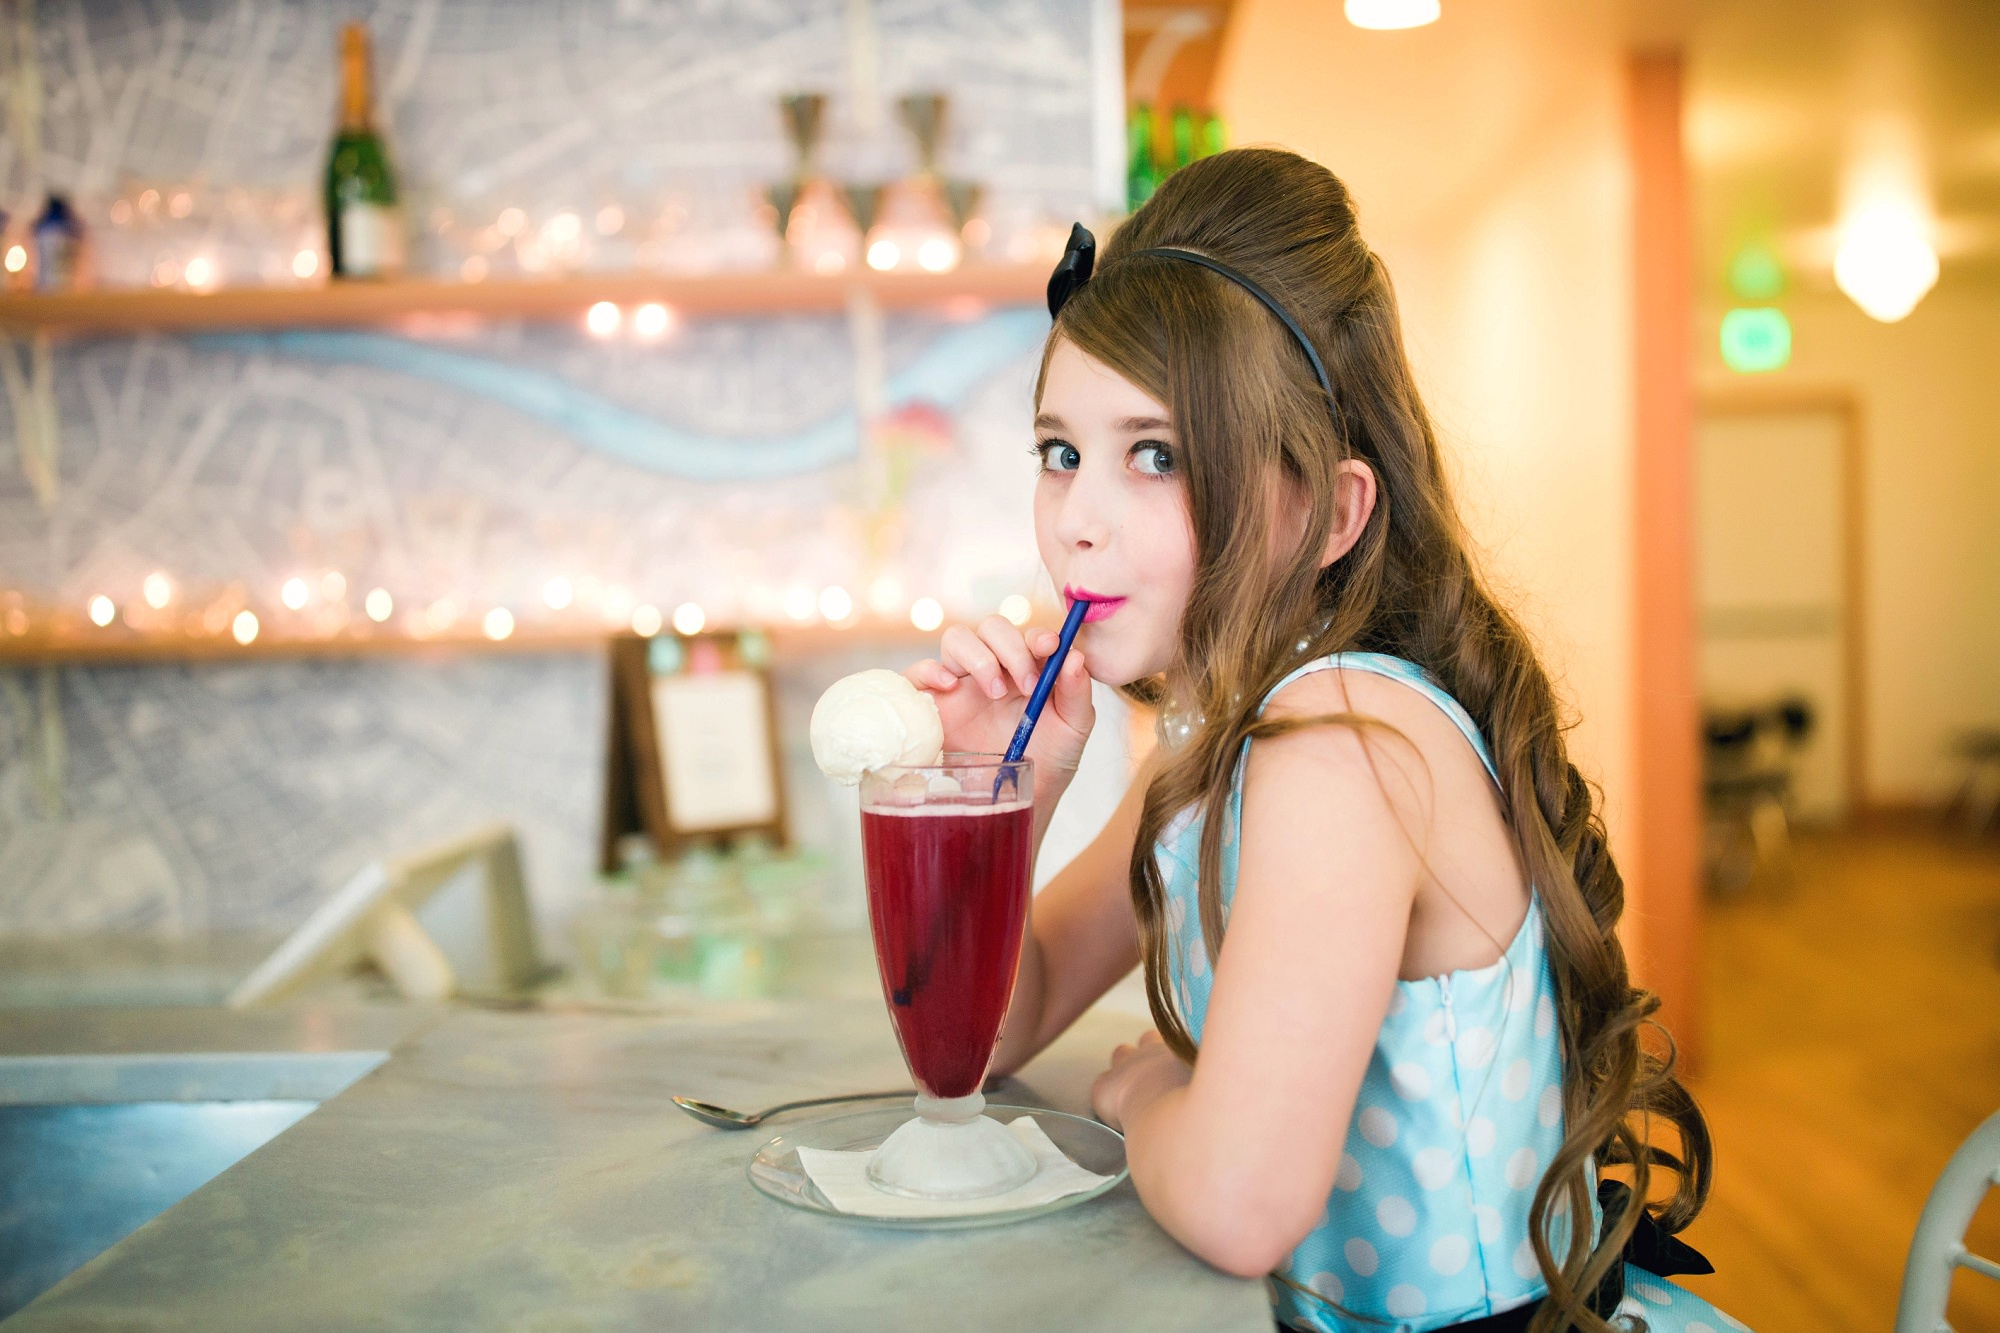 retro children's commercial photo shoot in a ice cream shop